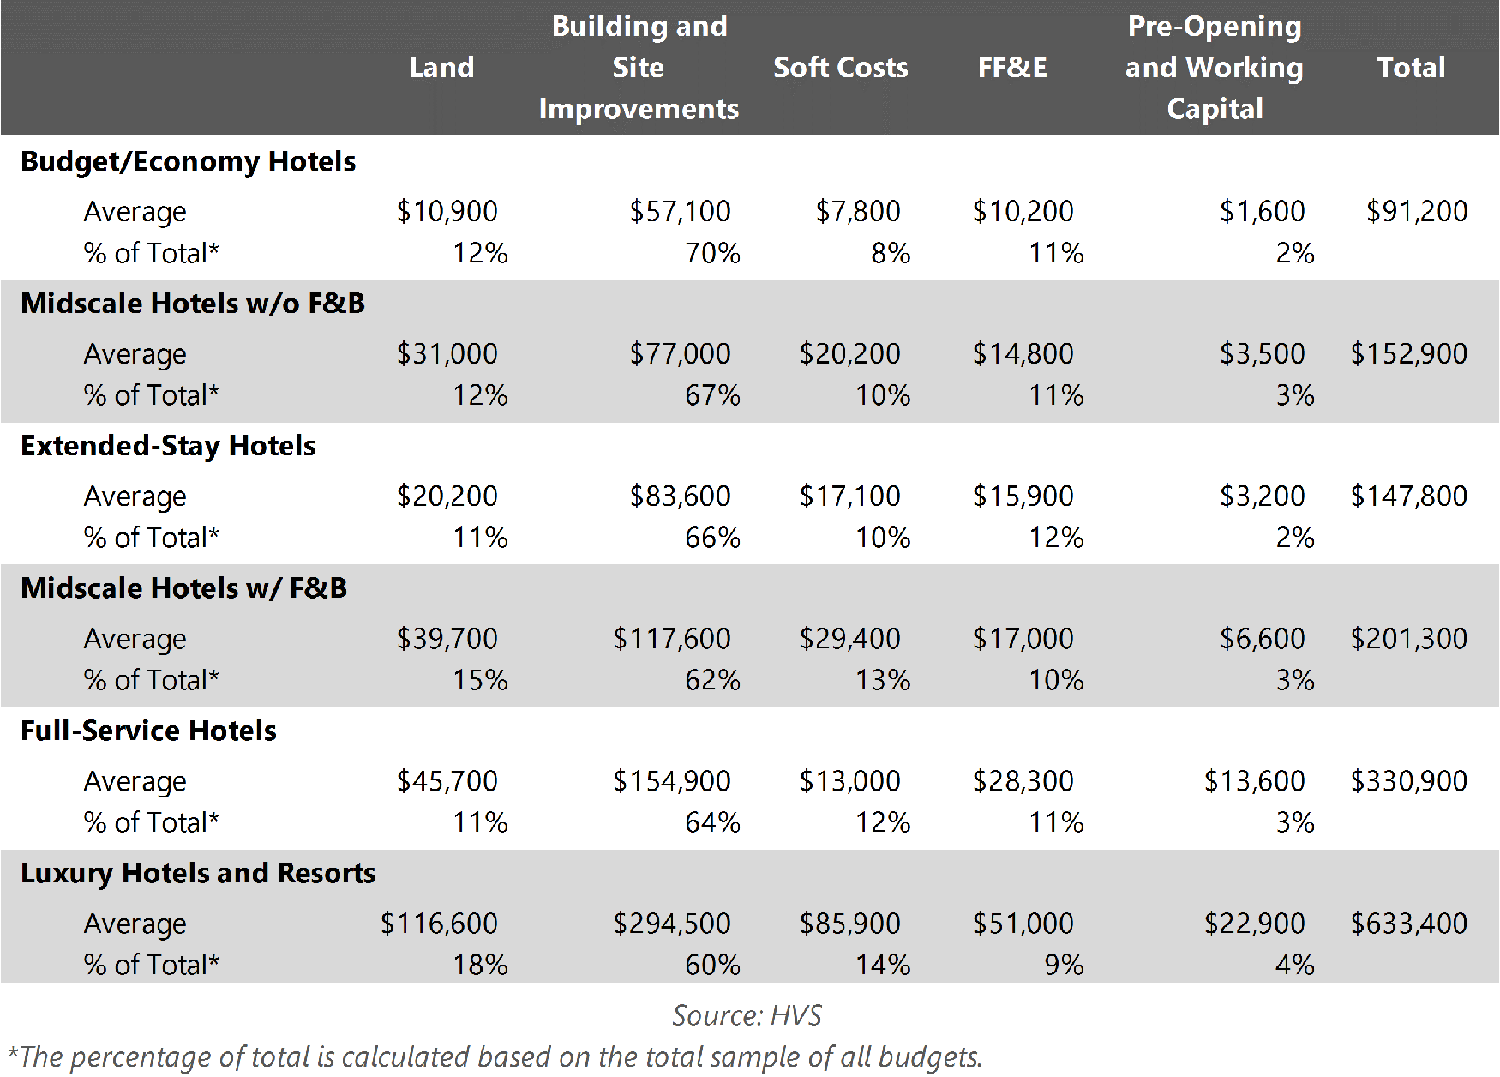 PER ROOM HOTEL DEVELOPMENT COSTS